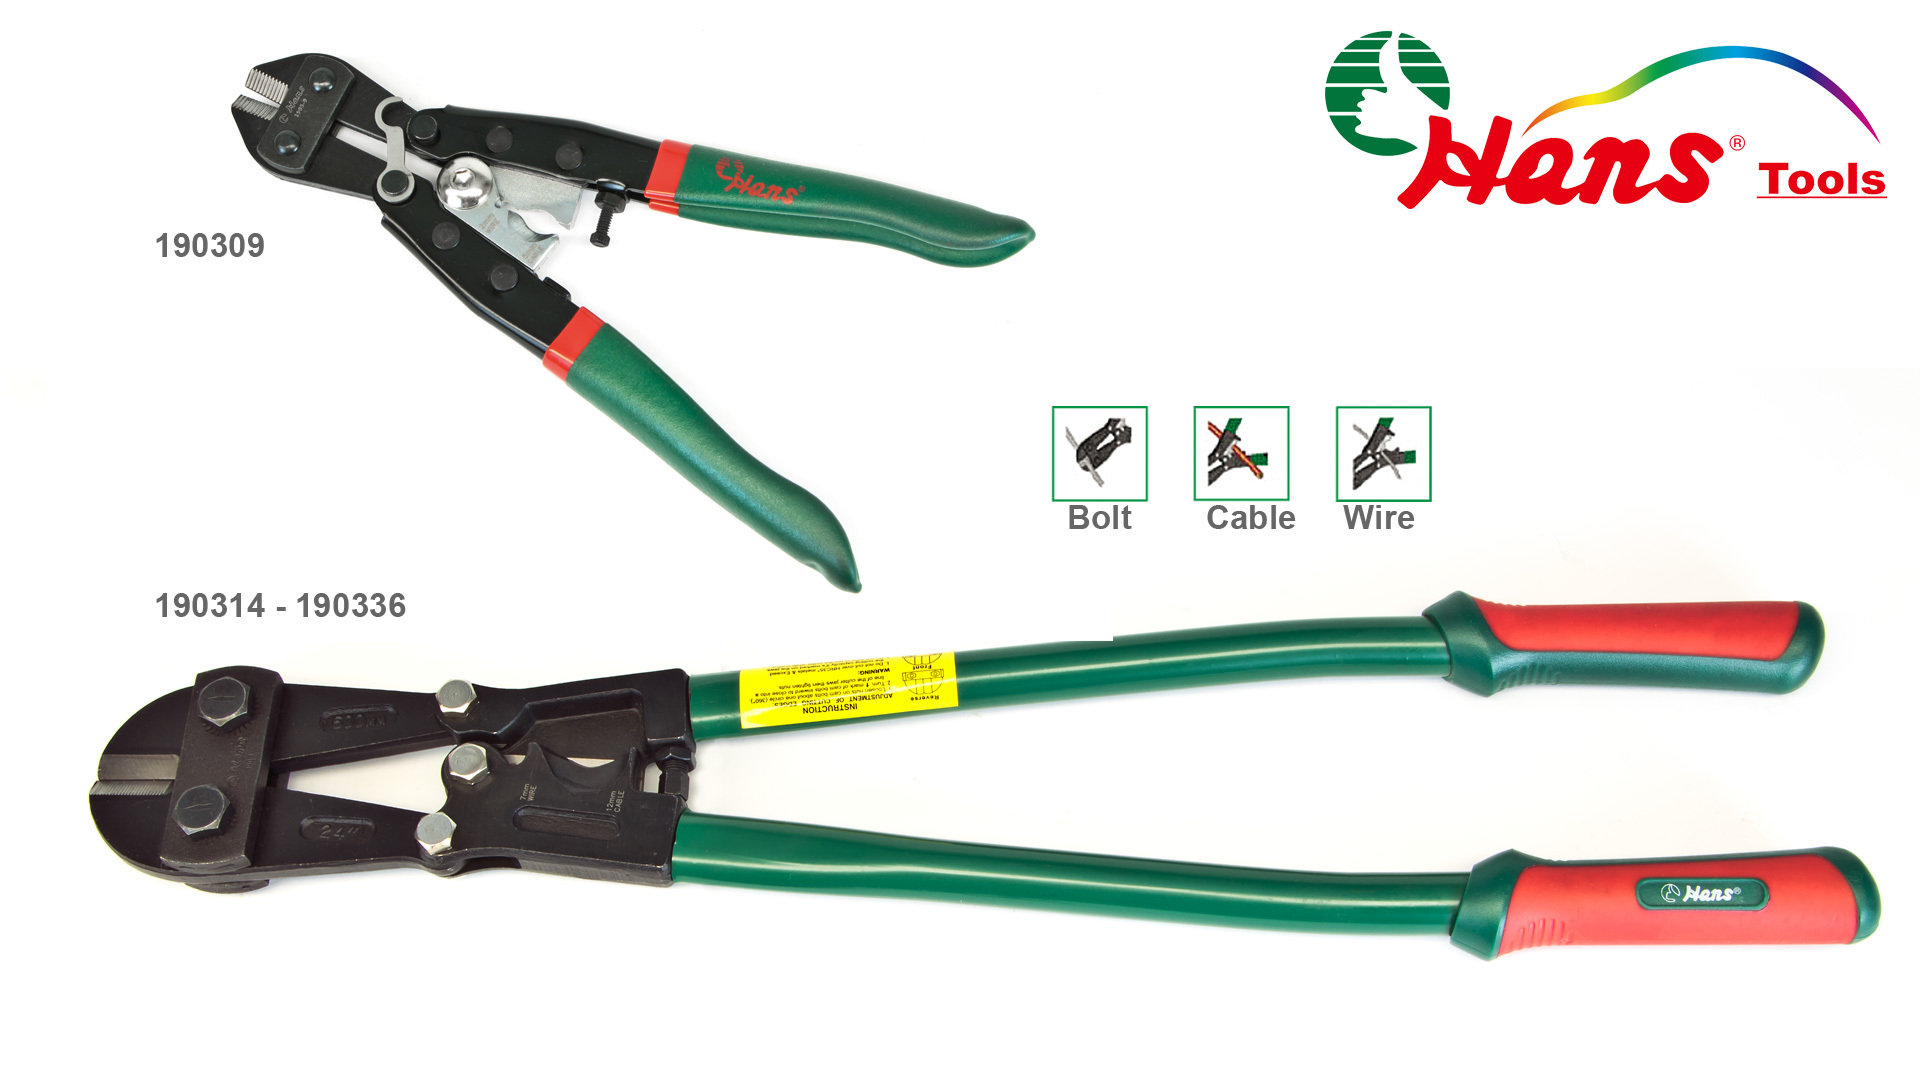 3 in 1 Bolt Cable Wire Cutter - HansTools Shop